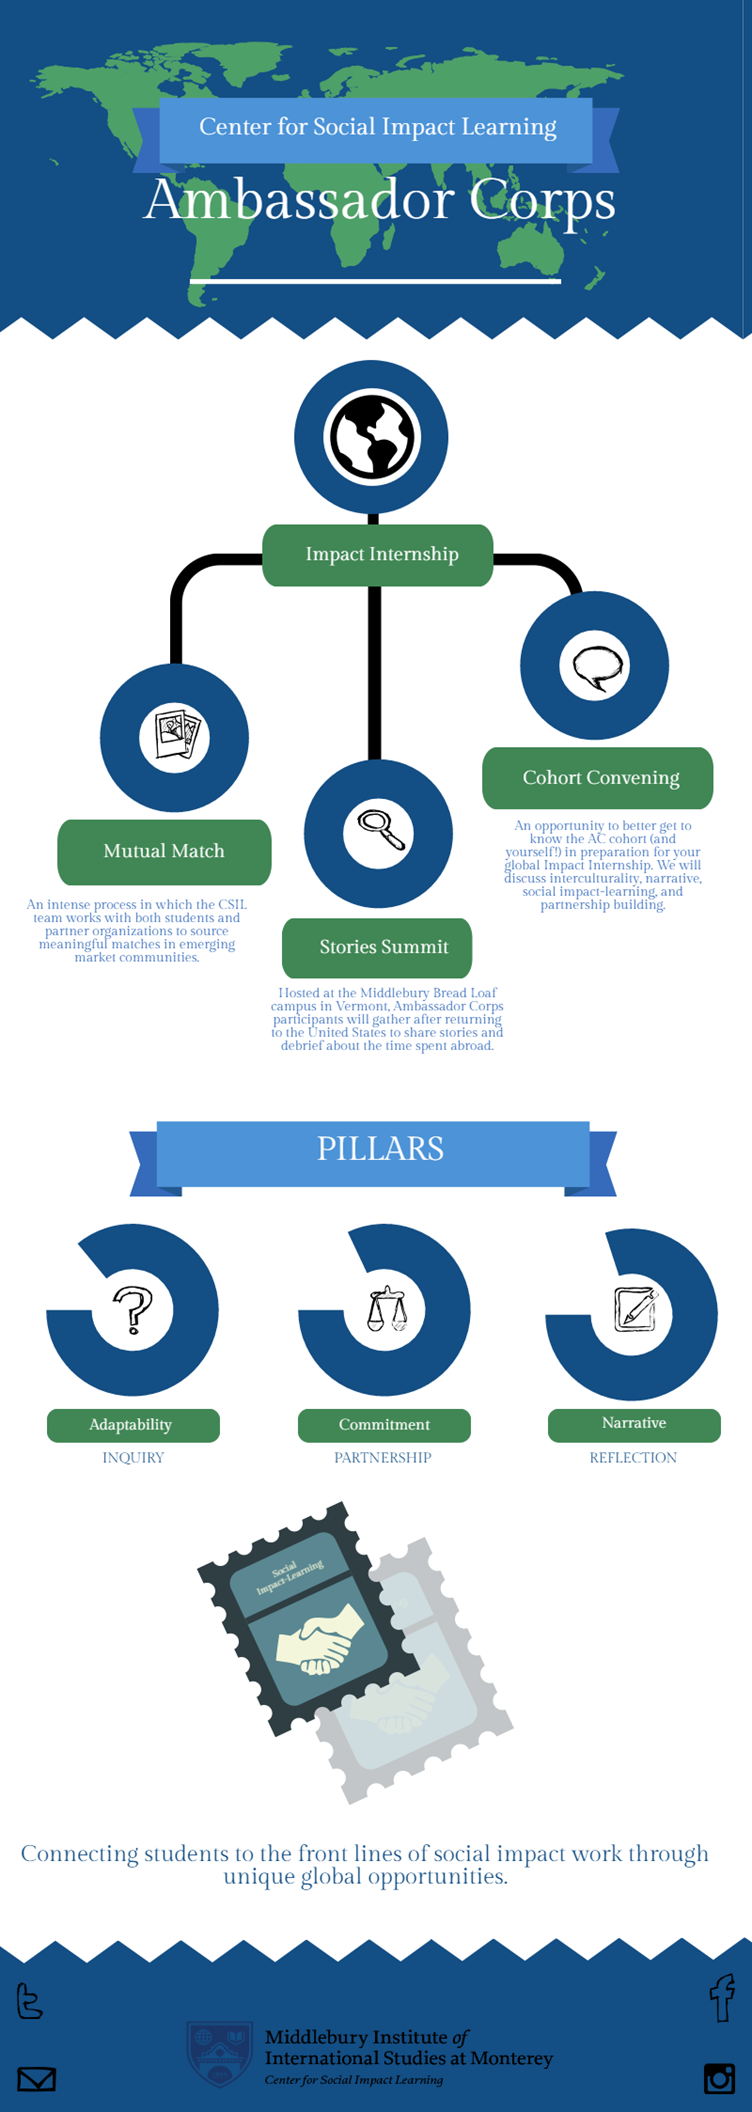 ac-2016-pillars-infographic